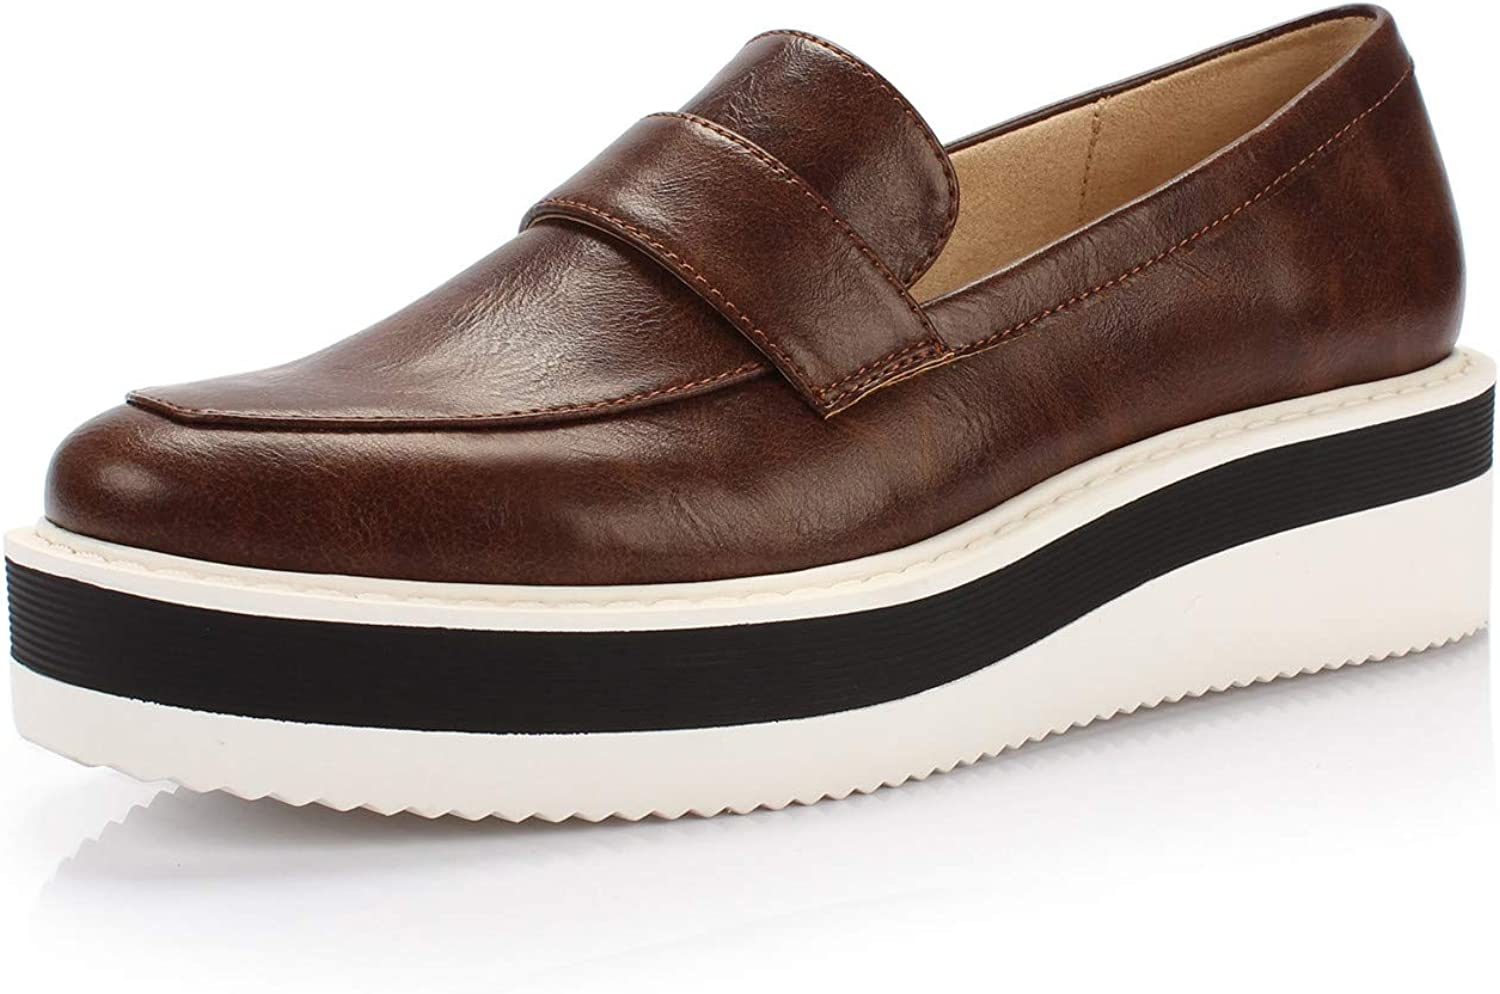 DUNION Women's Career Max 88% OFF Almond Toe Penny Loafers Sne Fashion Wedge supreme